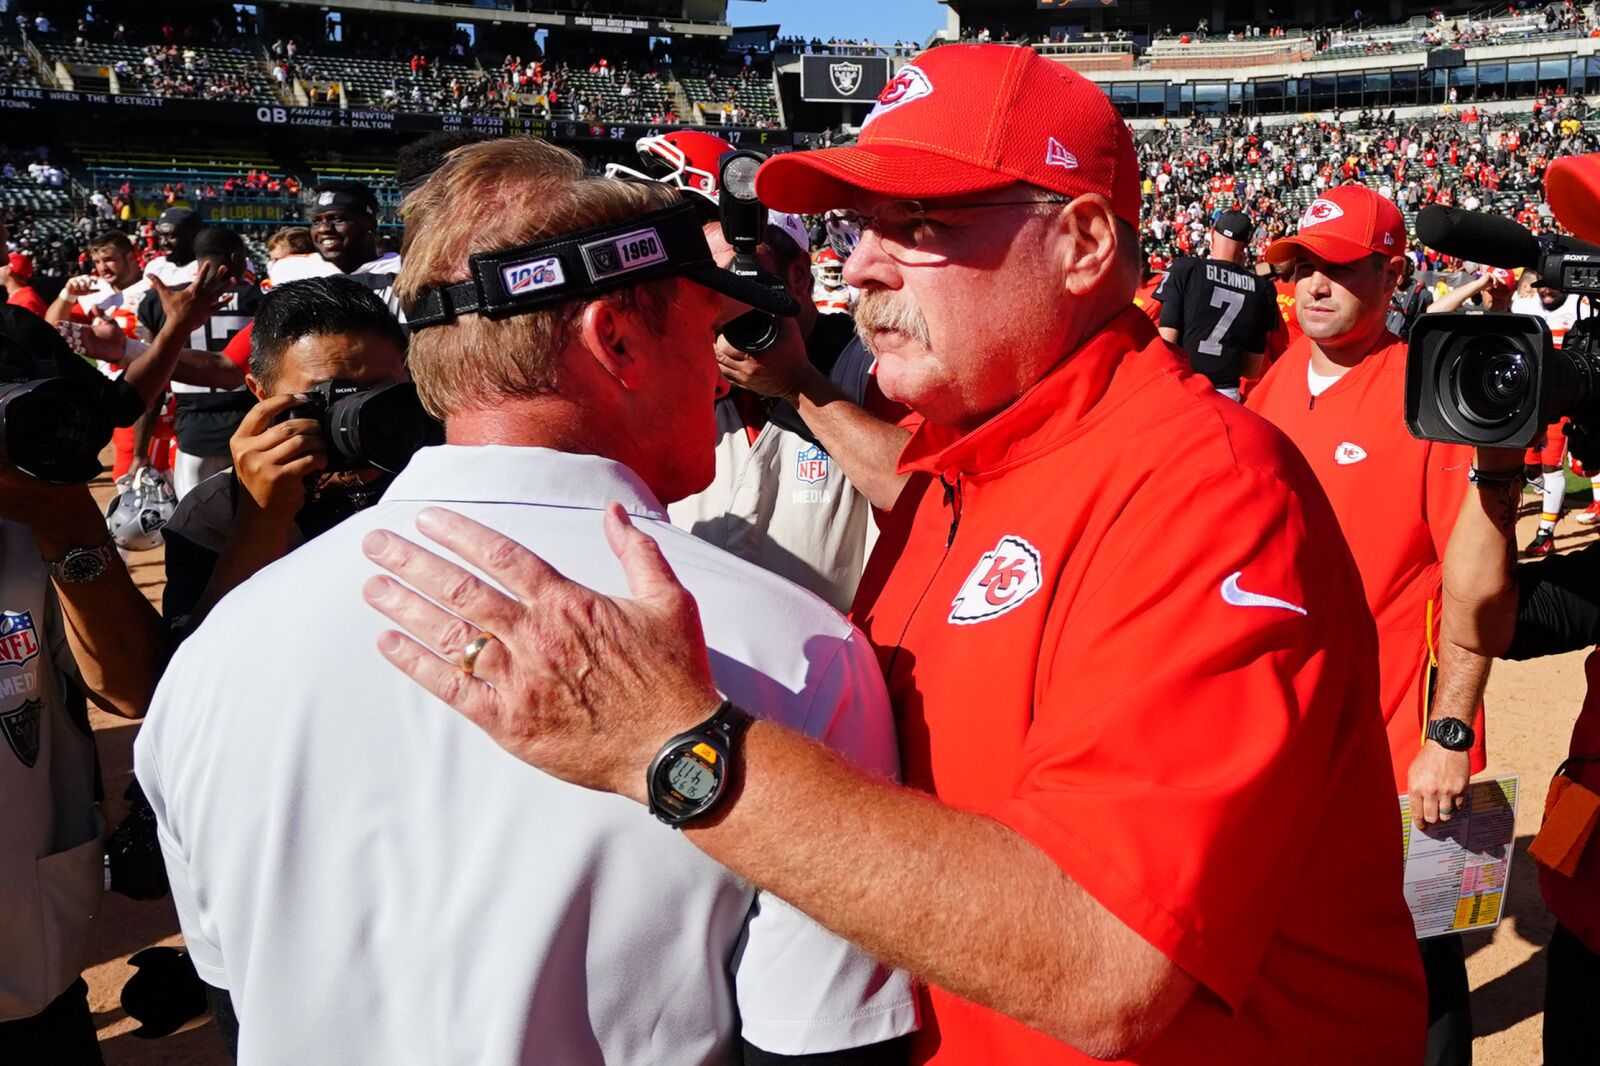 Andy Reid ties Chuck Noll on NFL's all-time coaching win list